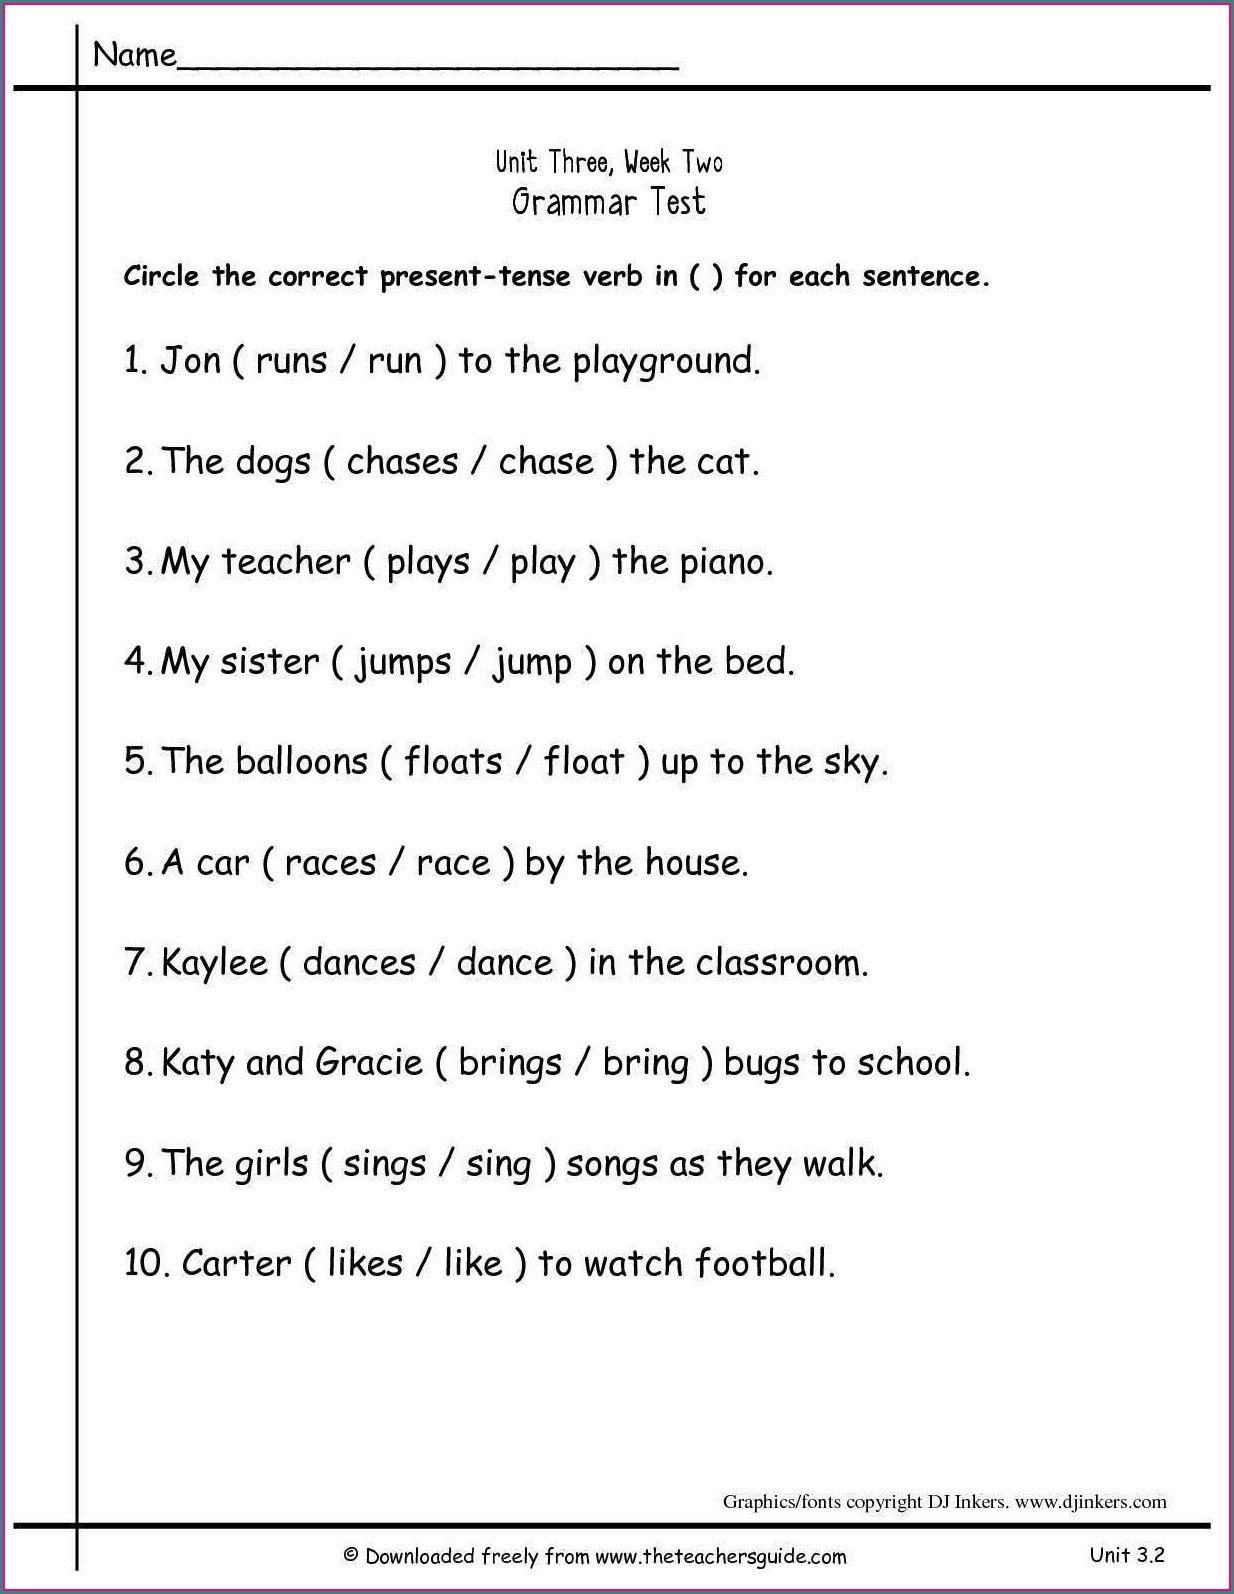 Grammar Worksheets for 2nd Grade Math Worksheet 2nd Grade Grammarets Second Printable Free